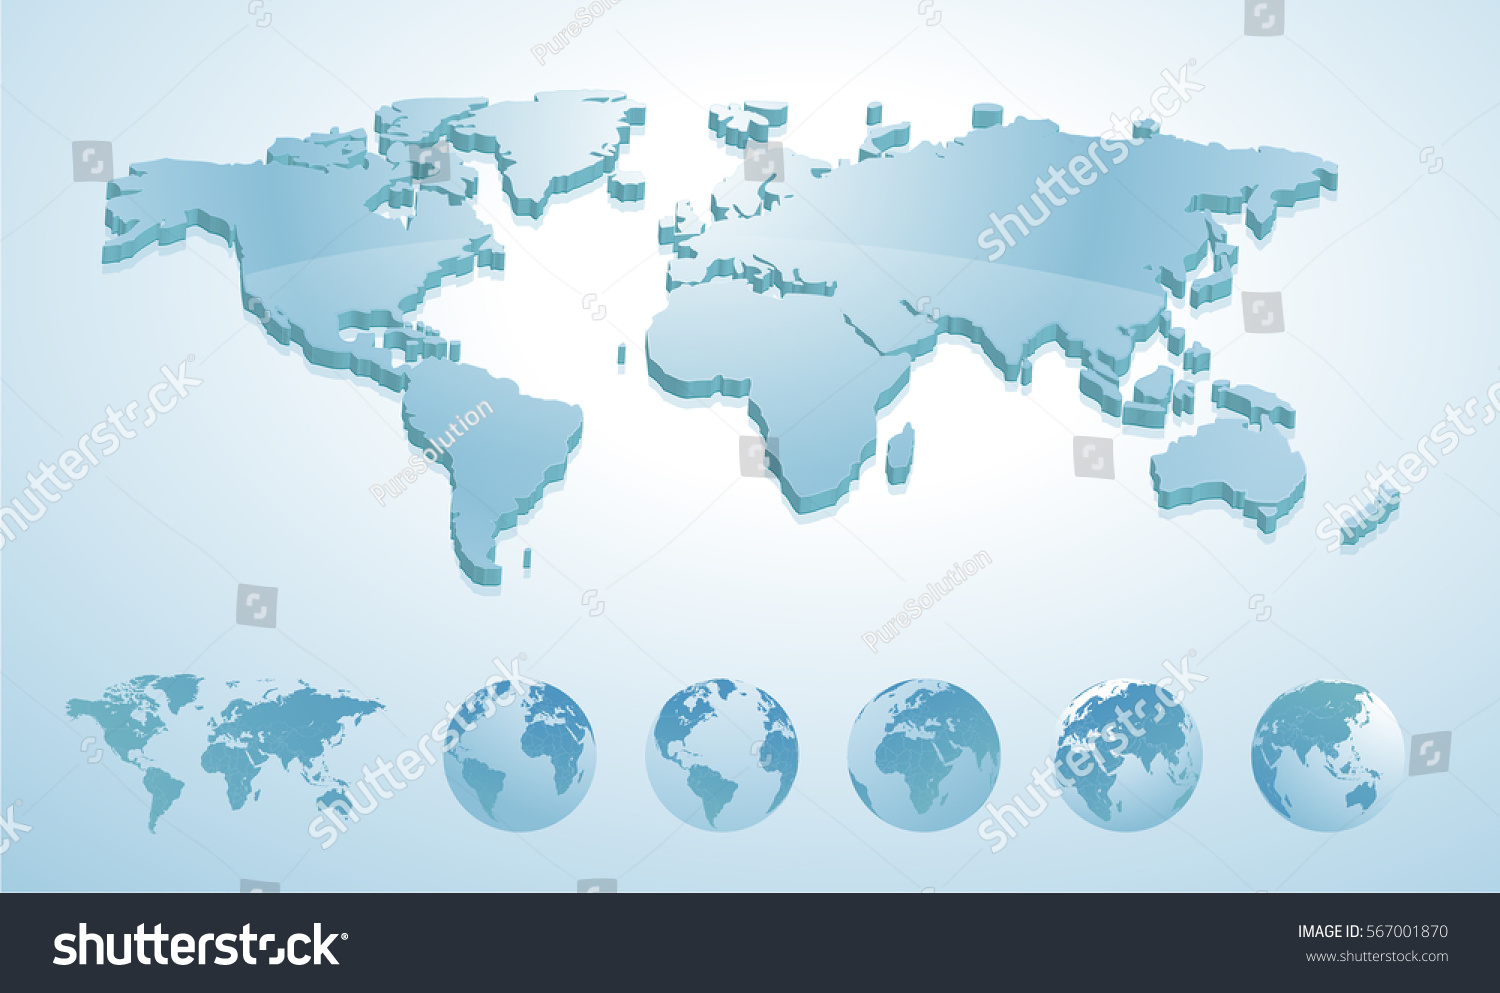 3d world map illustration earth globes stock vector hd royalty free 3d world map illustration with earth globes showing all continents vector illustration template for website gumiabroncs Image collections